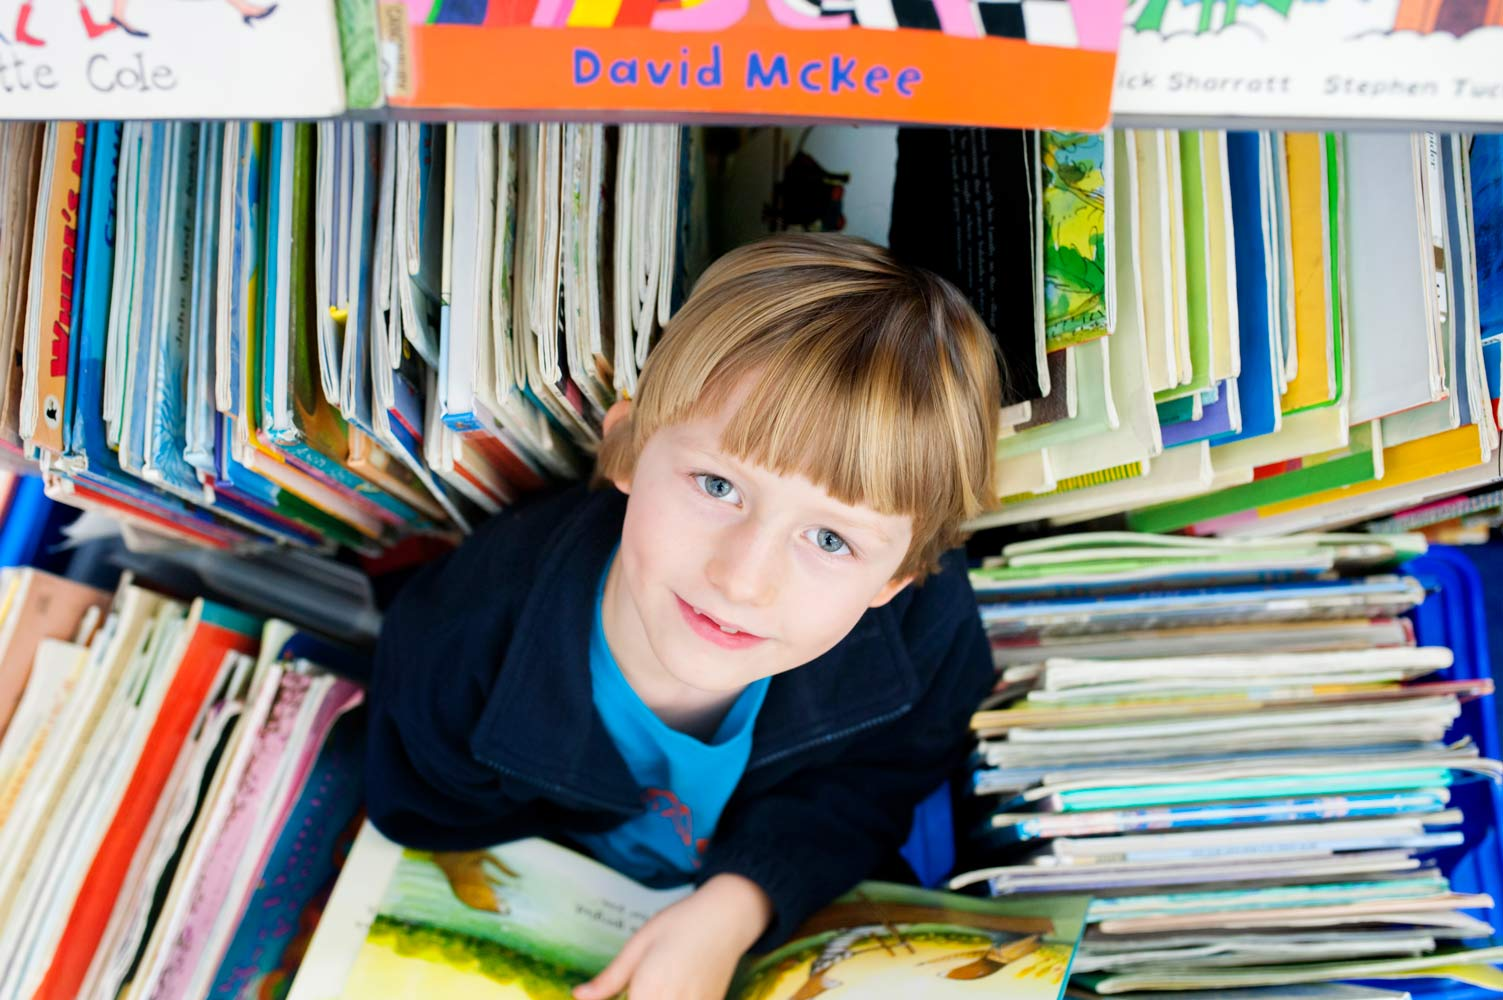 School pupil looking at the camera surrounded by books